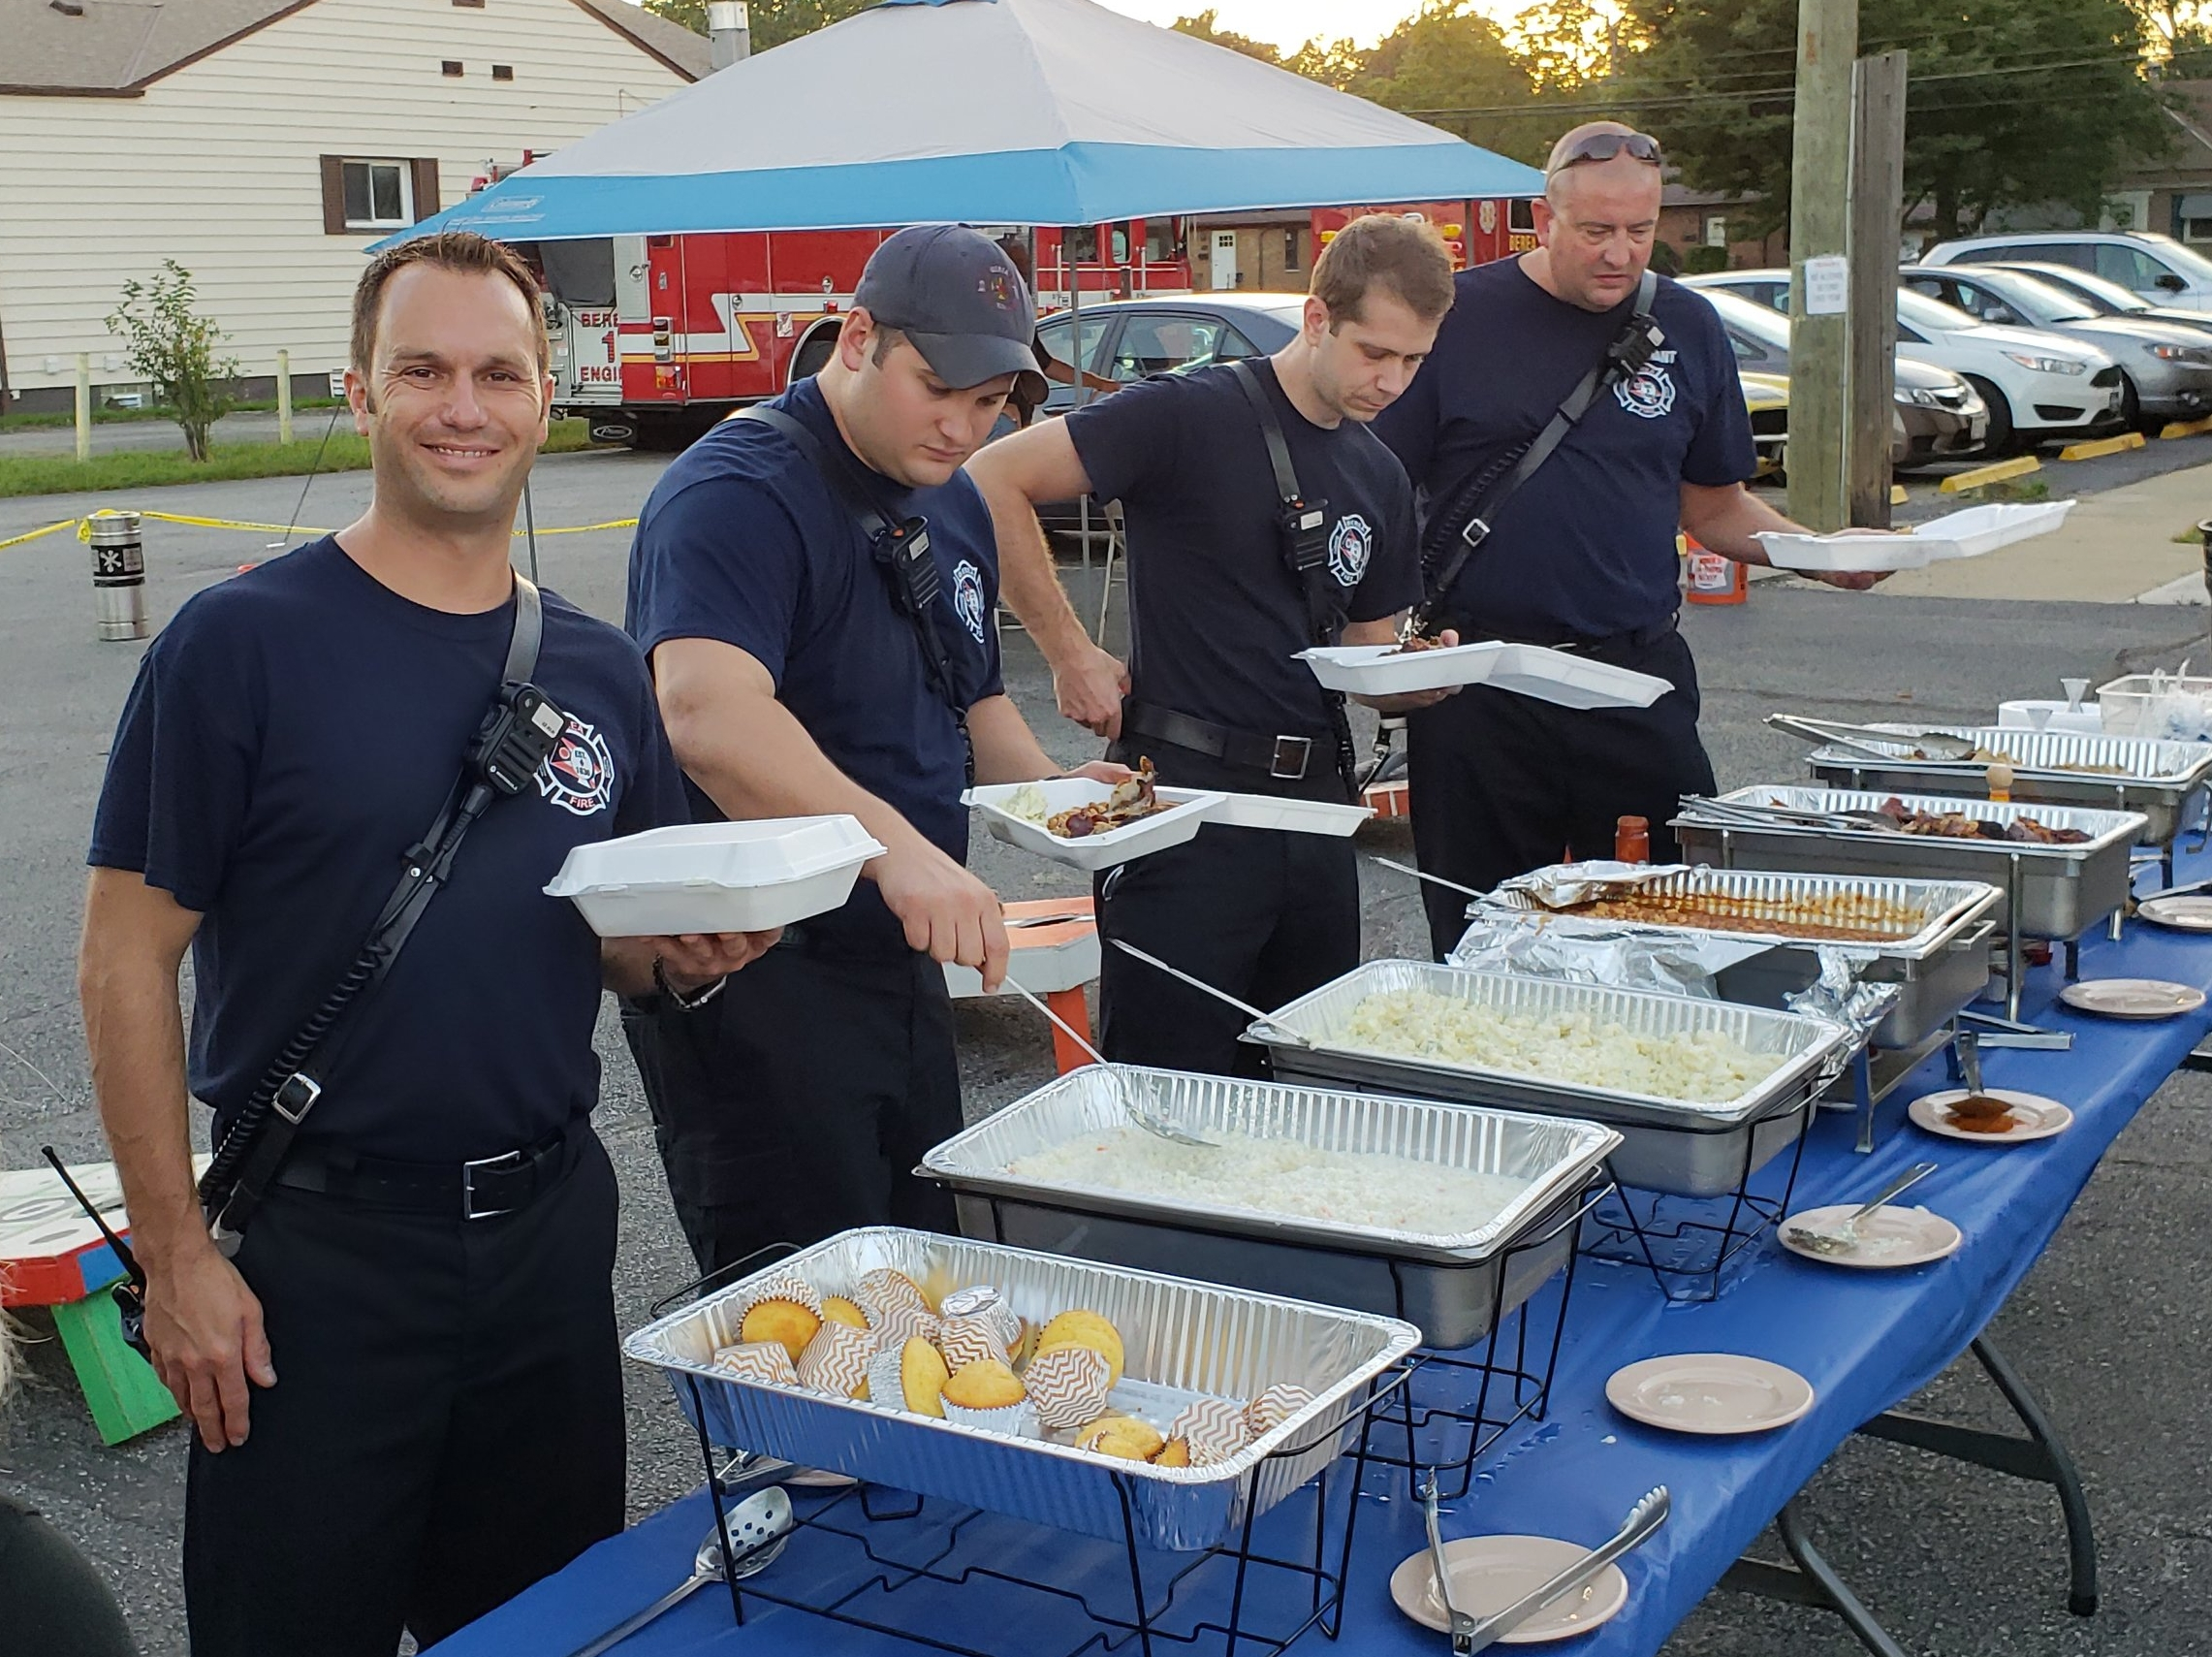 Berea Fire Department stopped by to enjoy dinner.